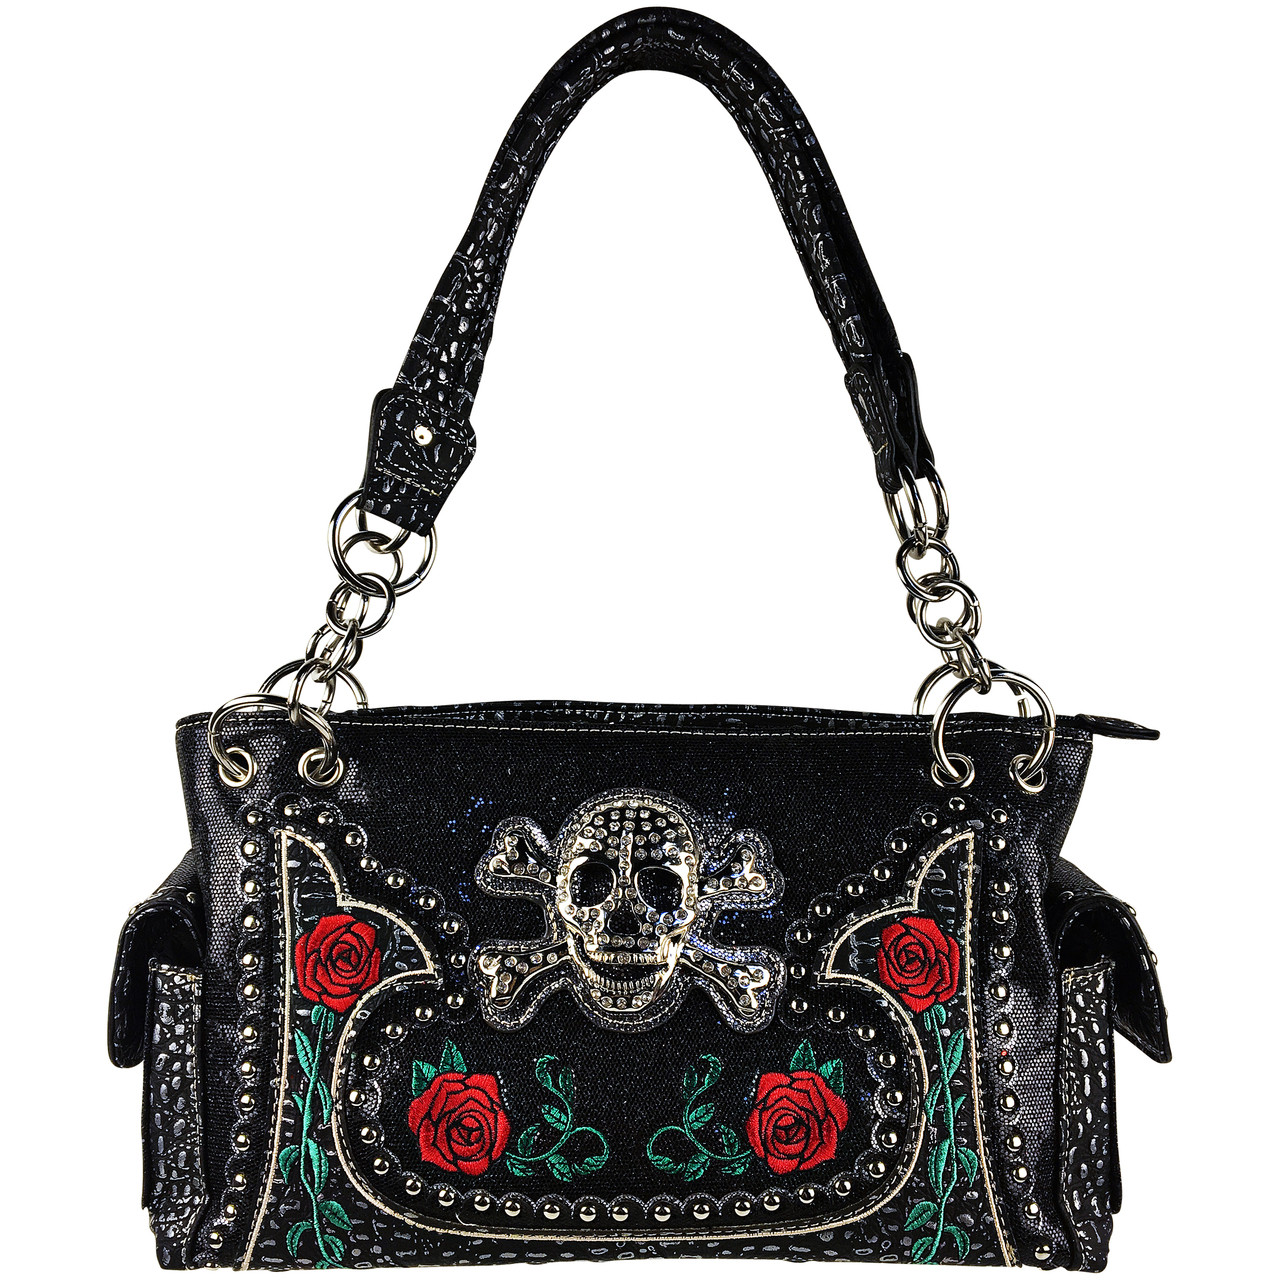 BLACK RHINESTONE GLITTER SKULL LOOK SHOULDER HANDBAG